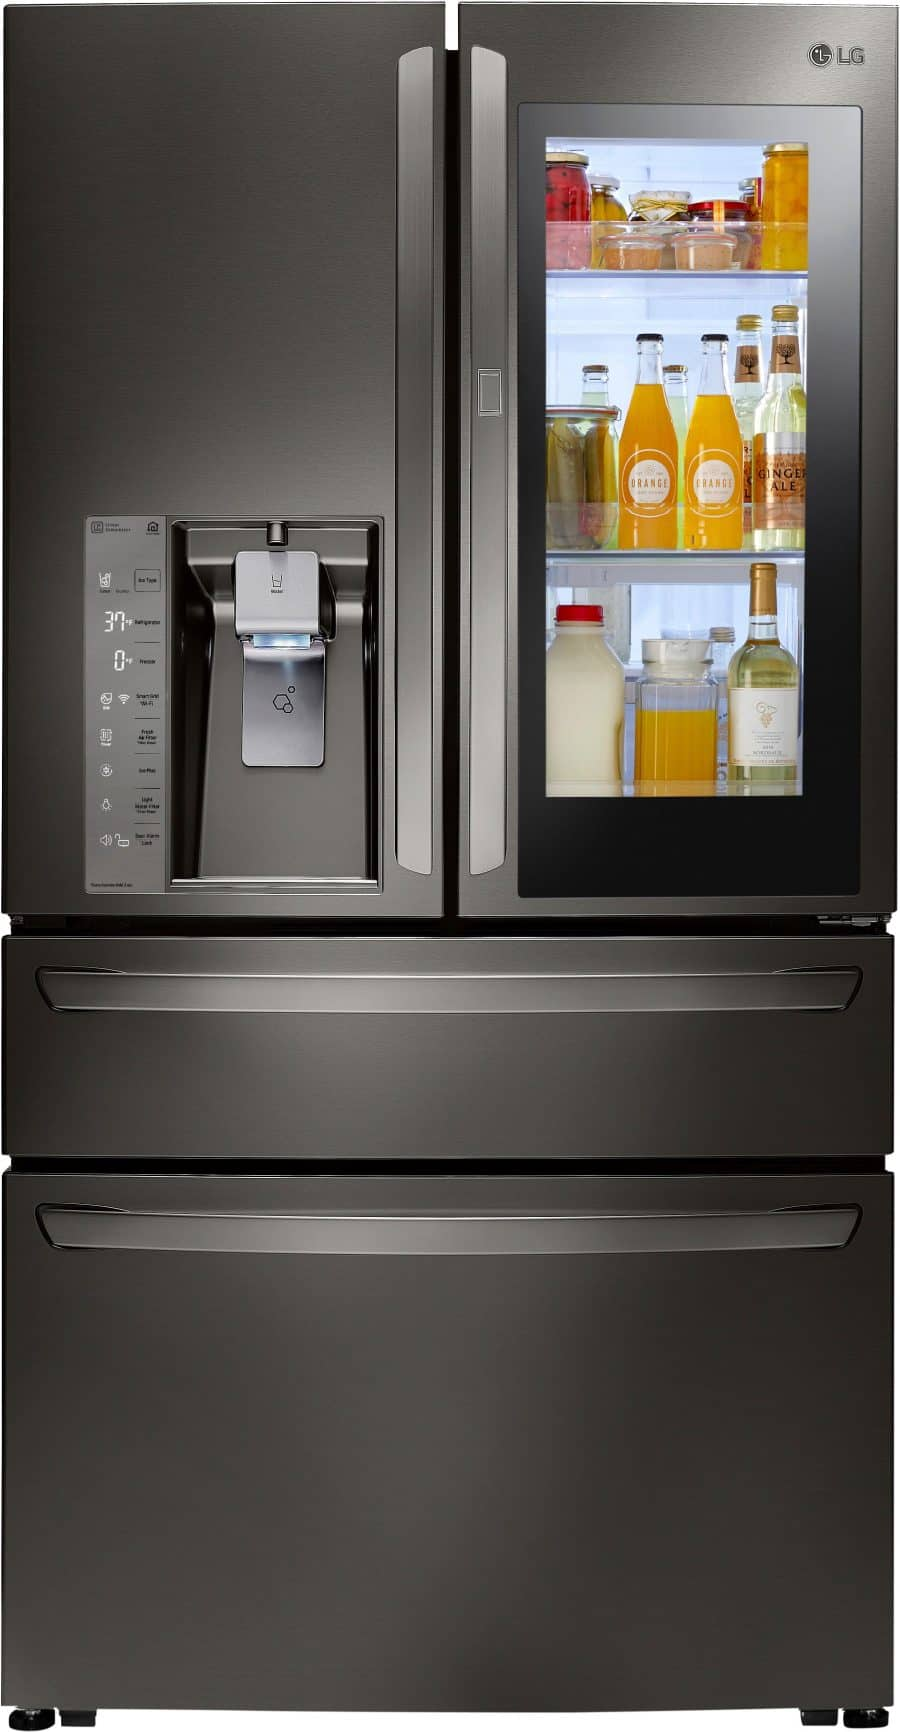 5 Reasons To Buy The LG InstaView Refrigerator 2